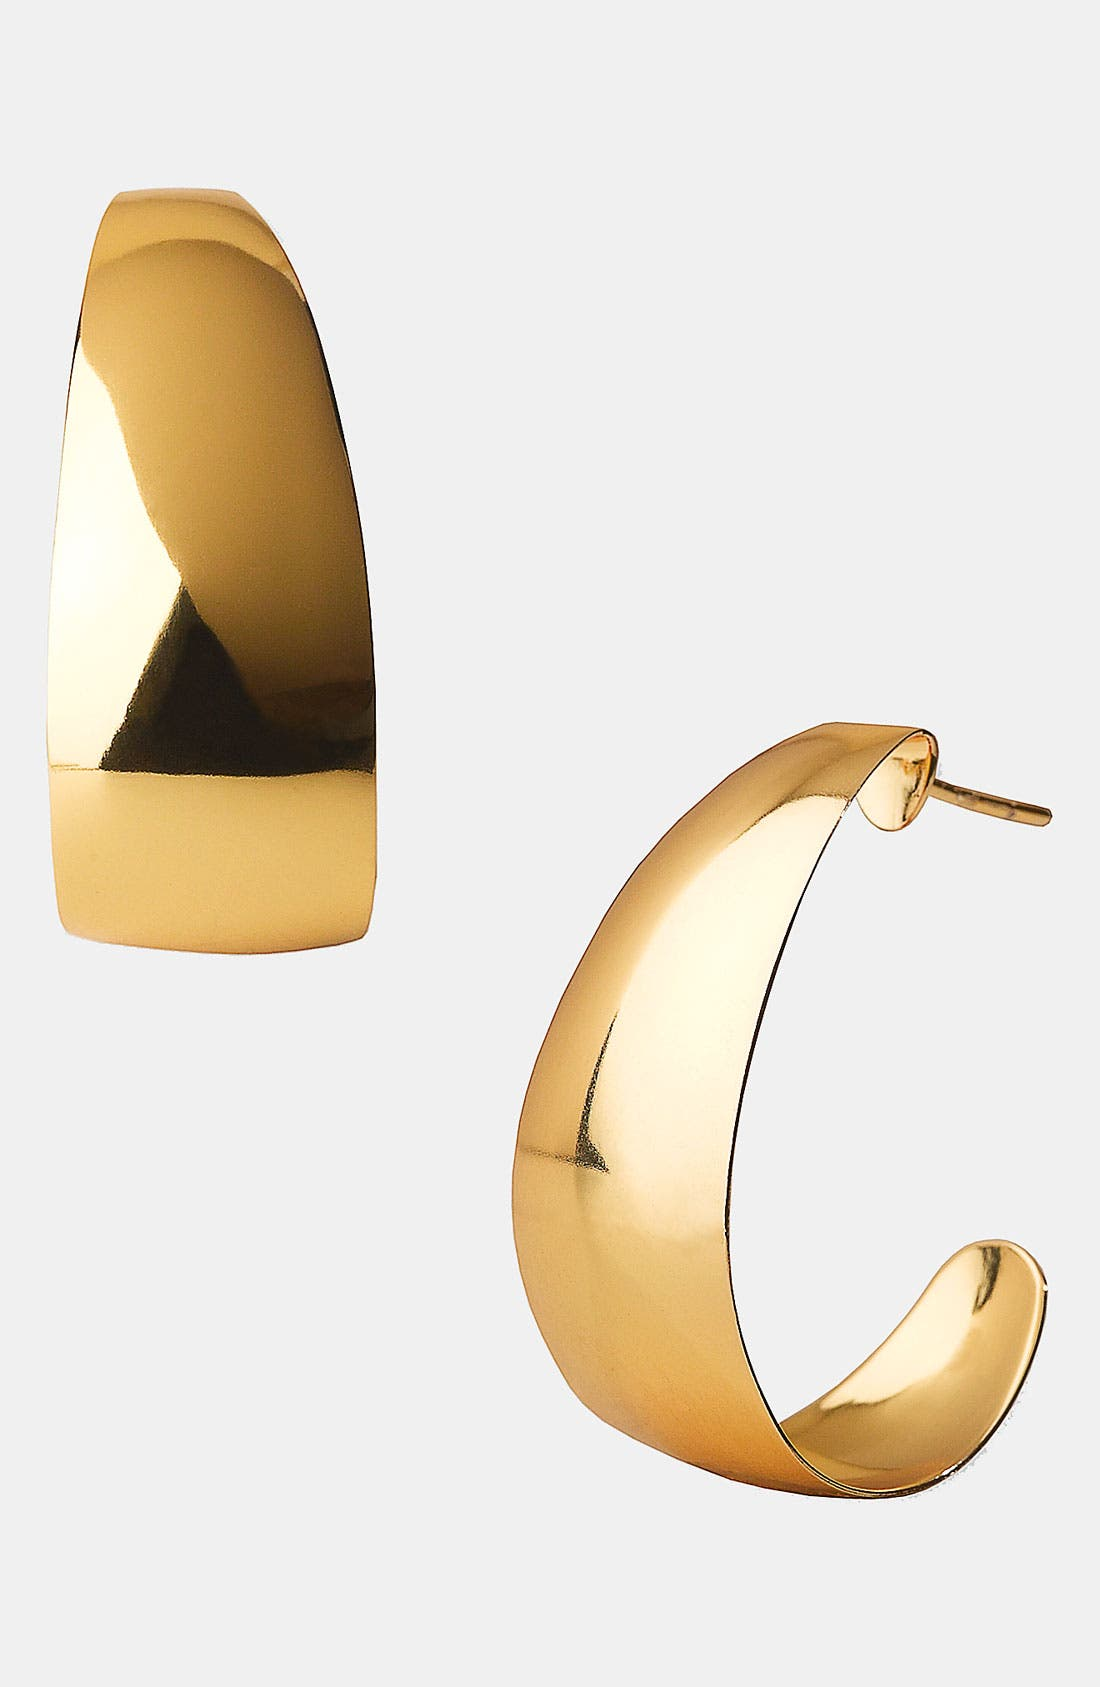 Alternate Image 1 Selected - Argento Vivo 'Metropolis' J-Hoop Earrings